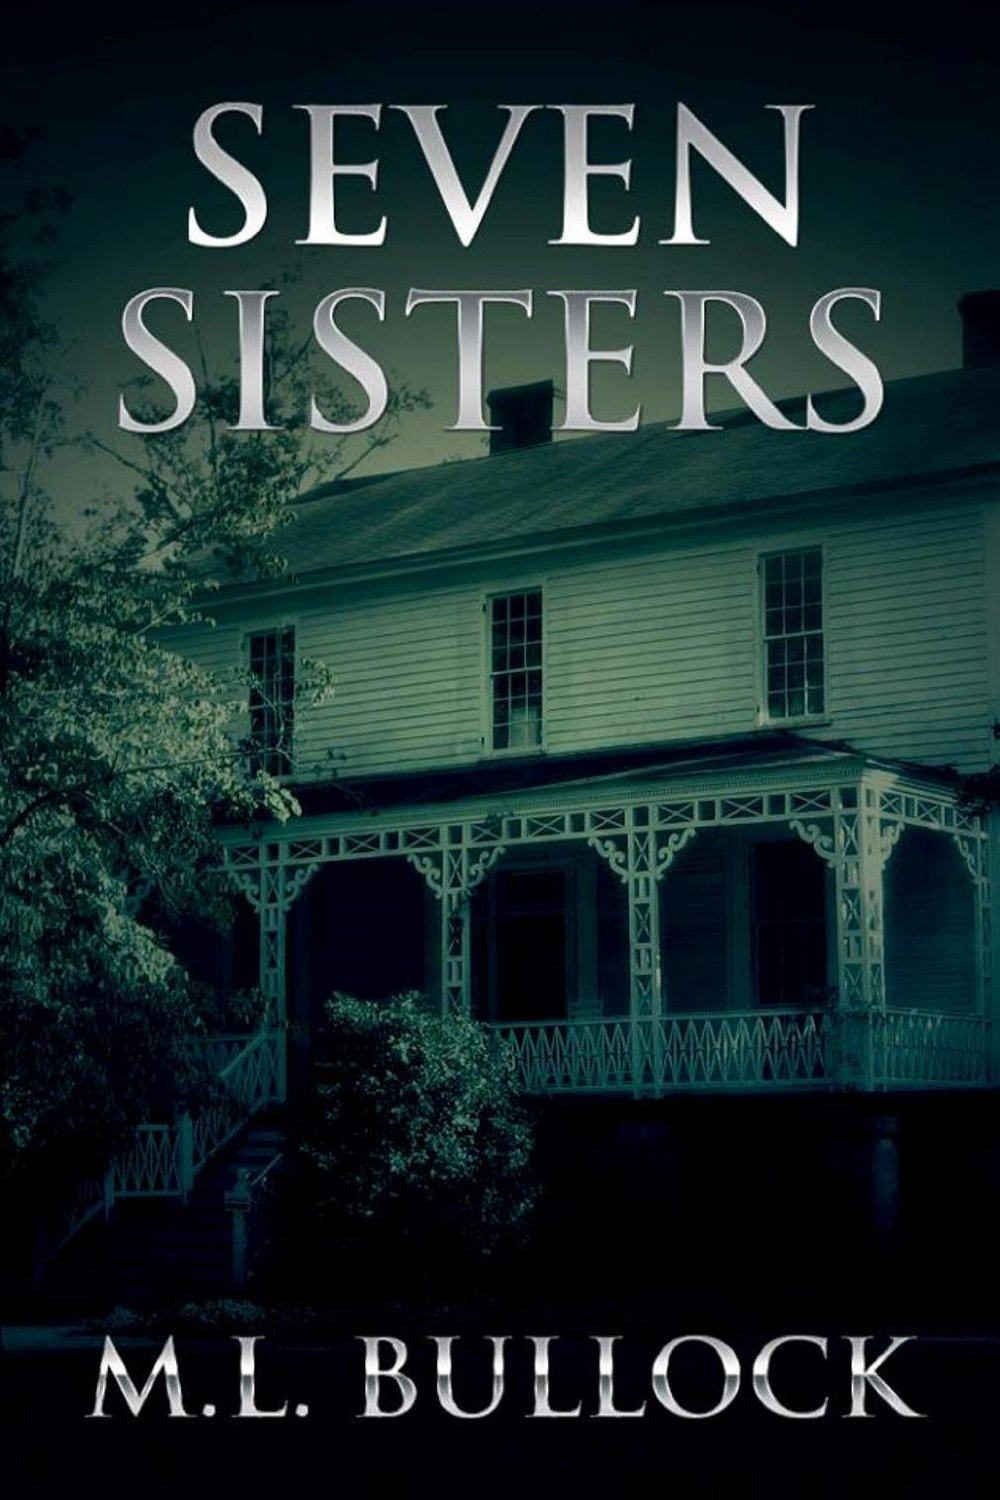 Seven Sisters: Seven Sisters Series, Book 1 by M.L. Bullock